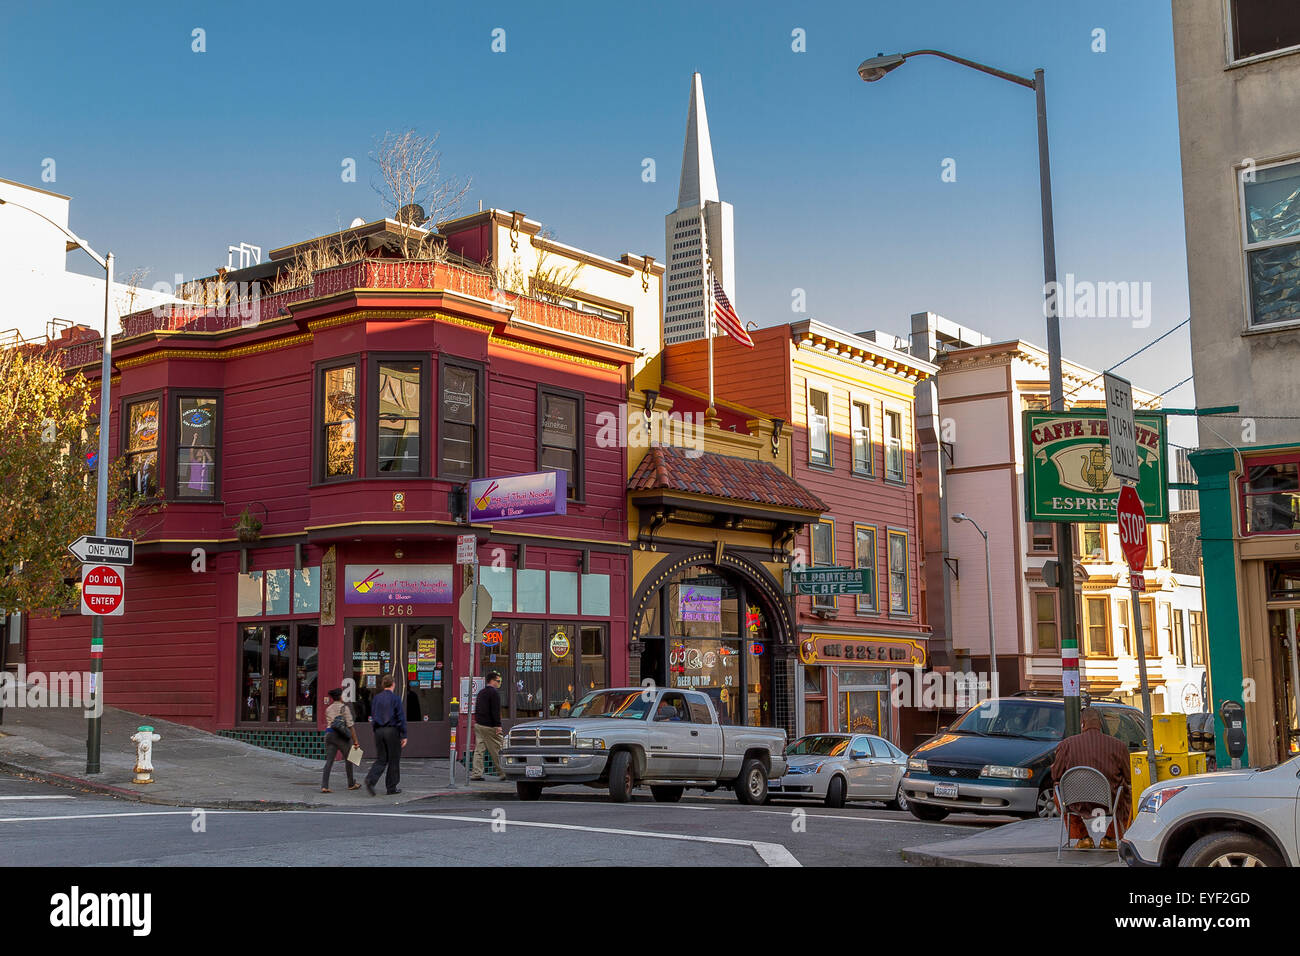 North Beach Street scene at Sunset with The Transamerica Pyramid  looming over the rooftops San Francisco,California, Stock Photo